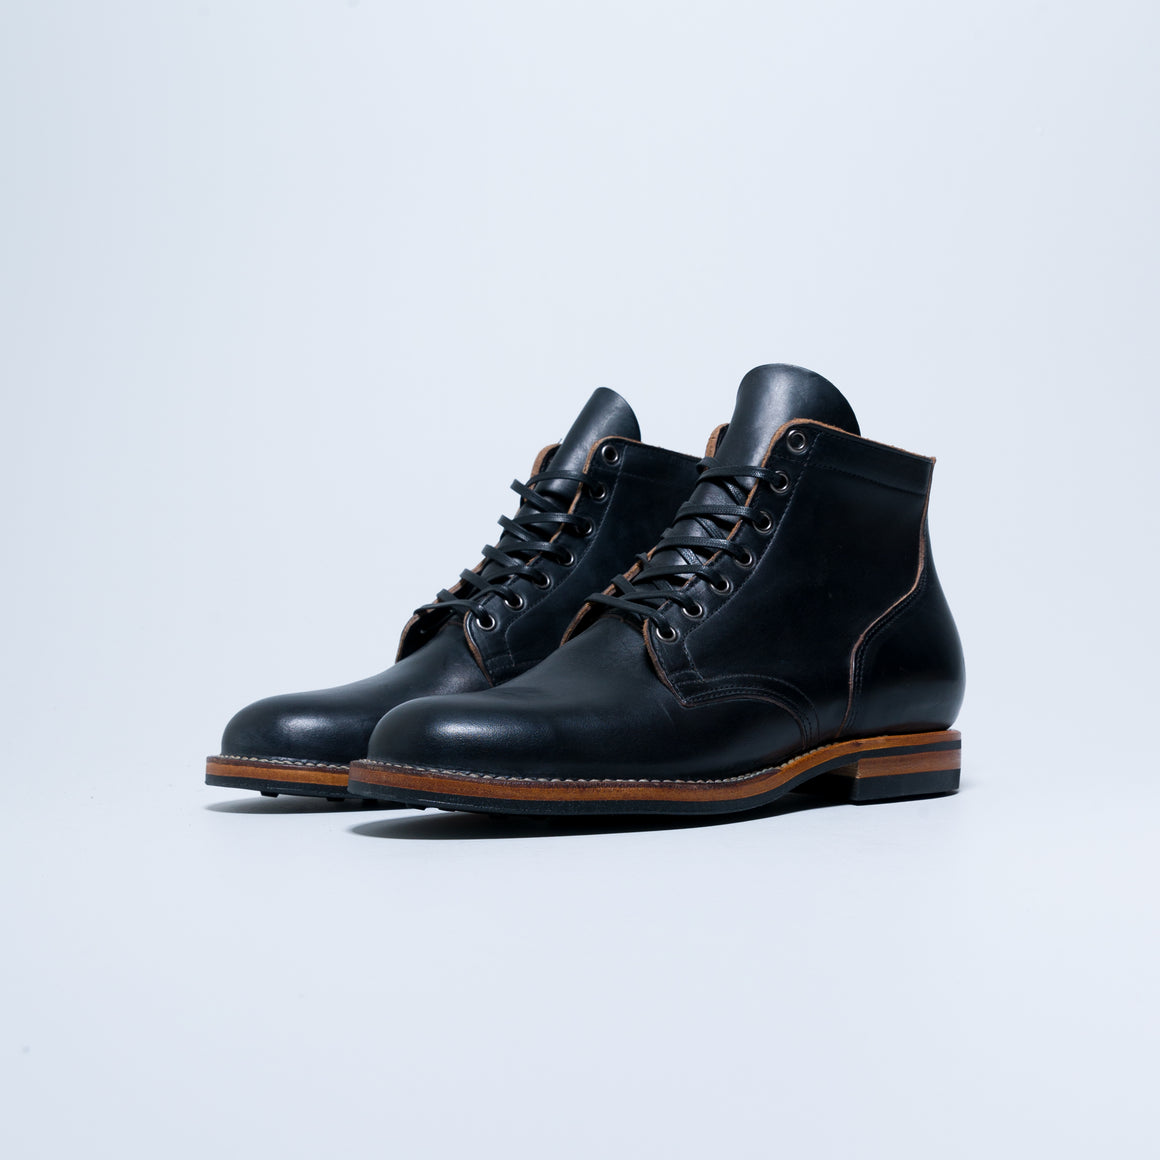 Service Boot - Black Chromexcel - Up There